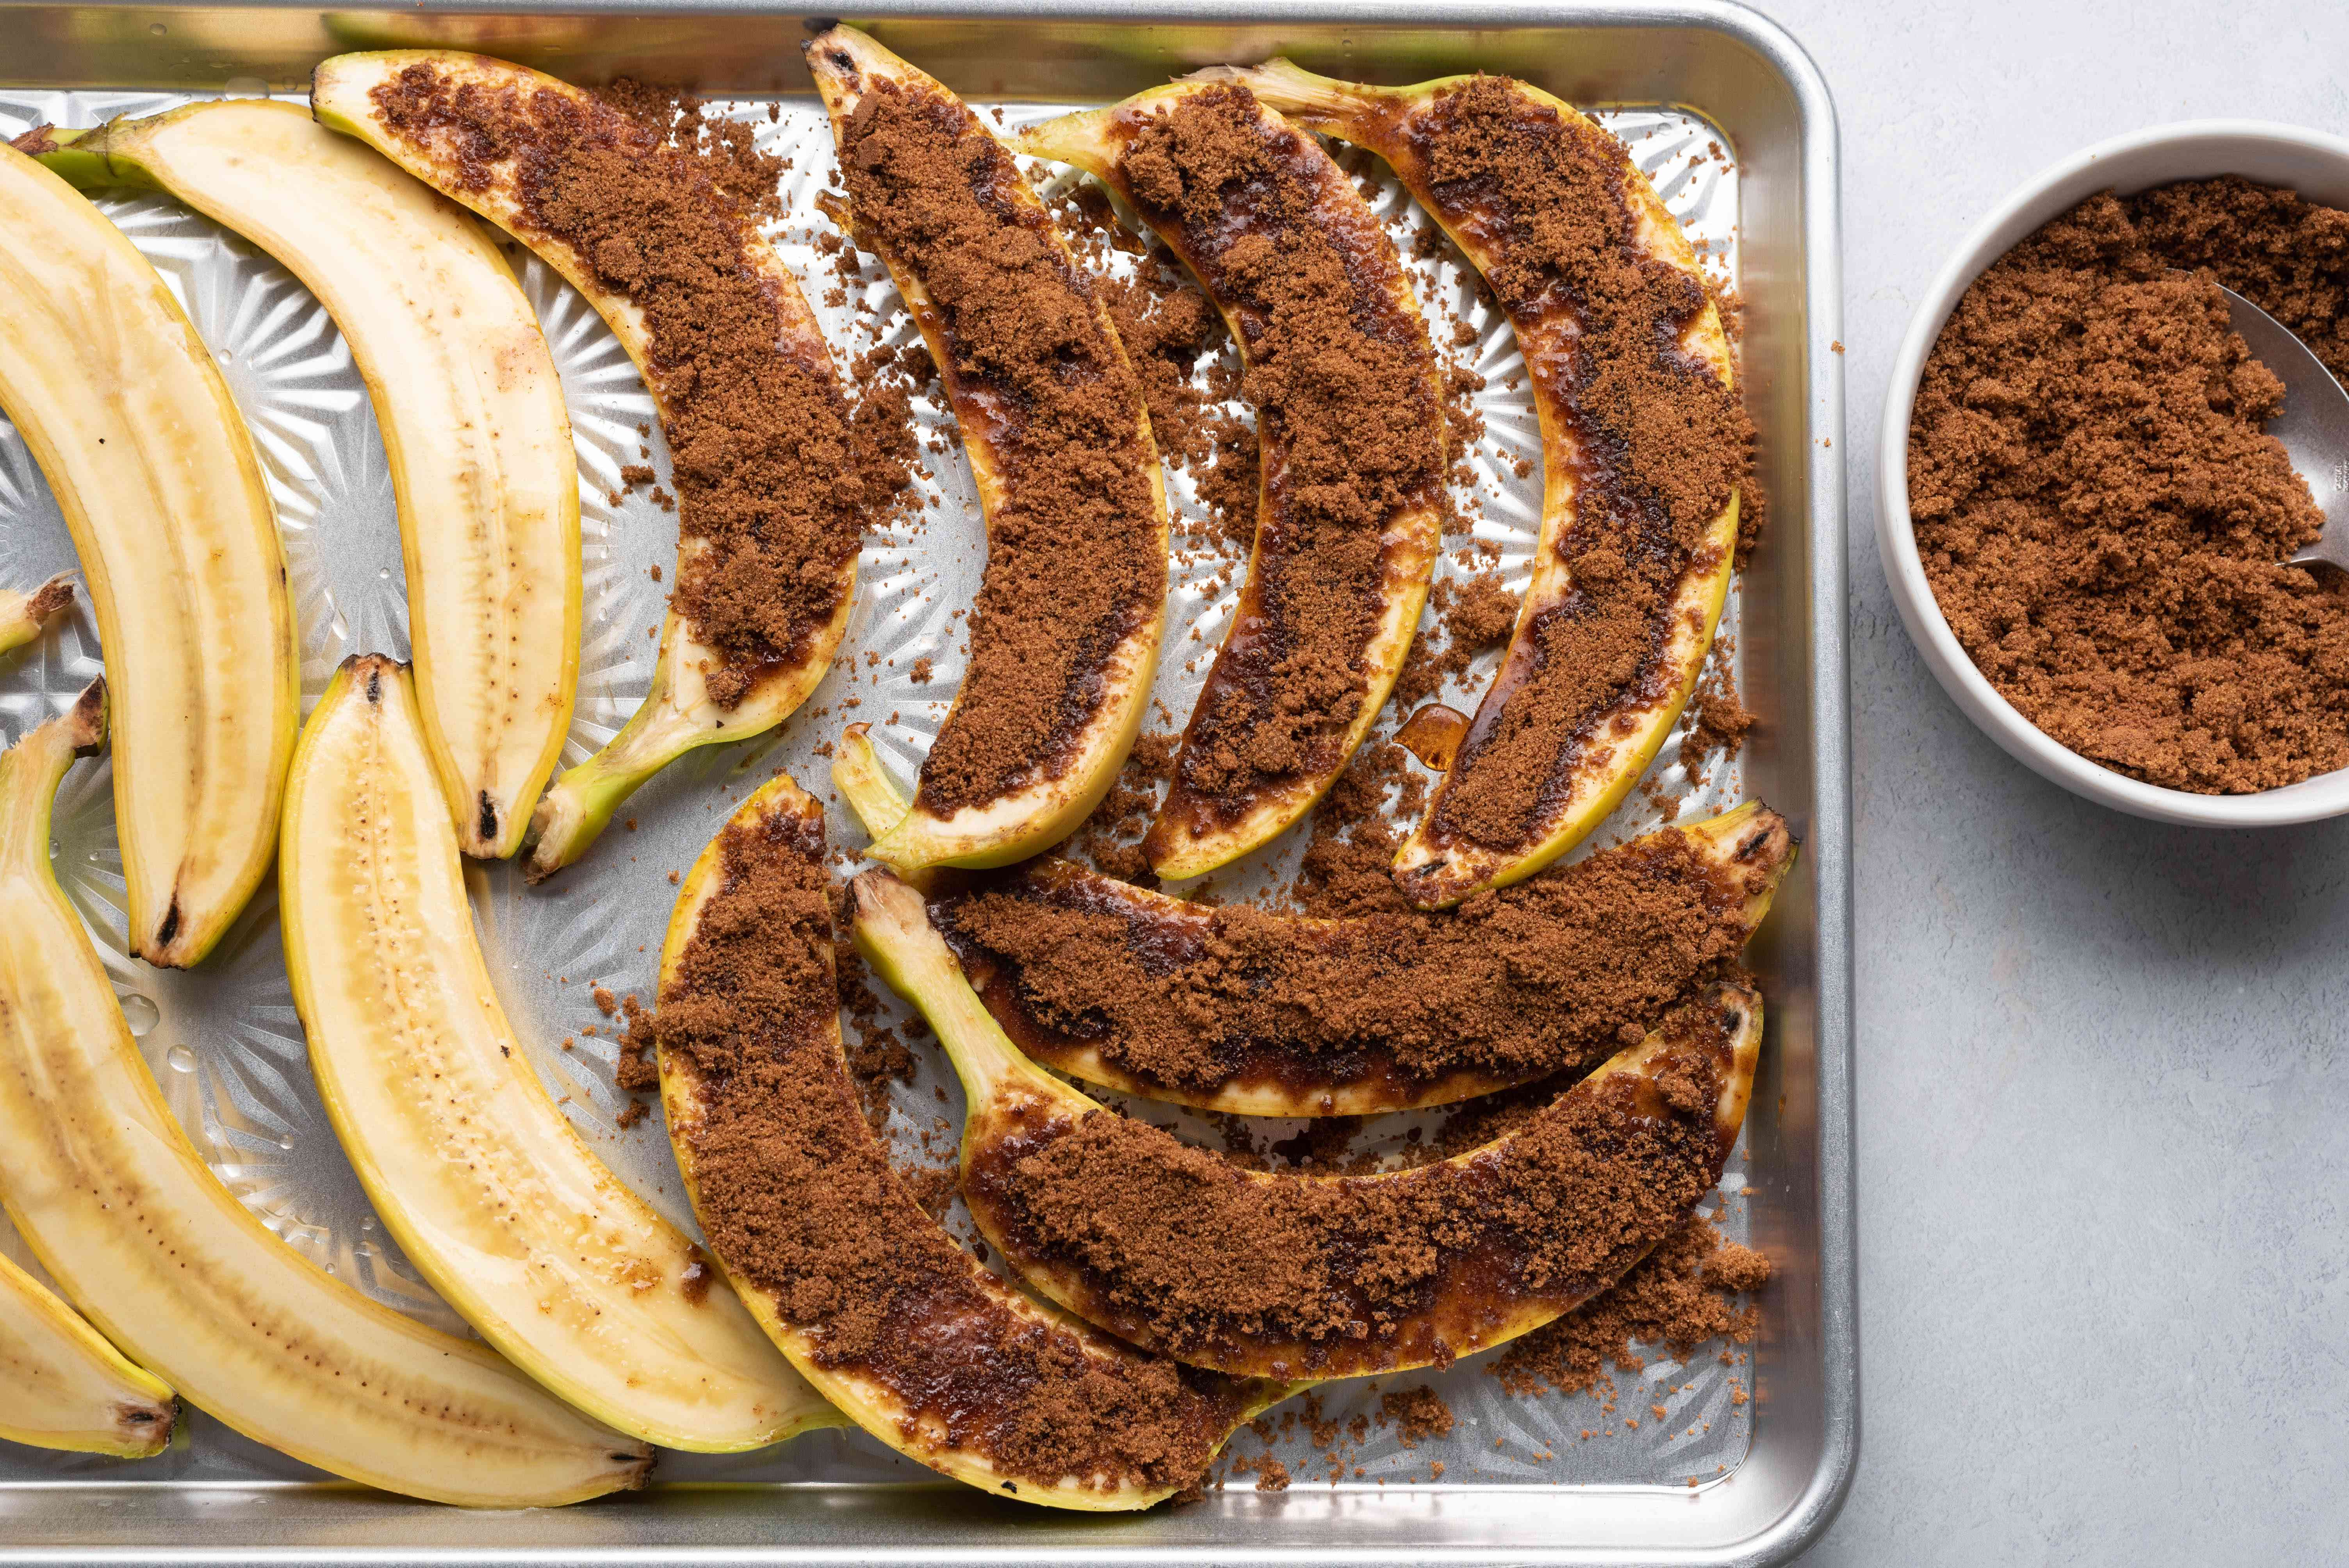 Coat the exposed surface of the bananas in the sugar mixture